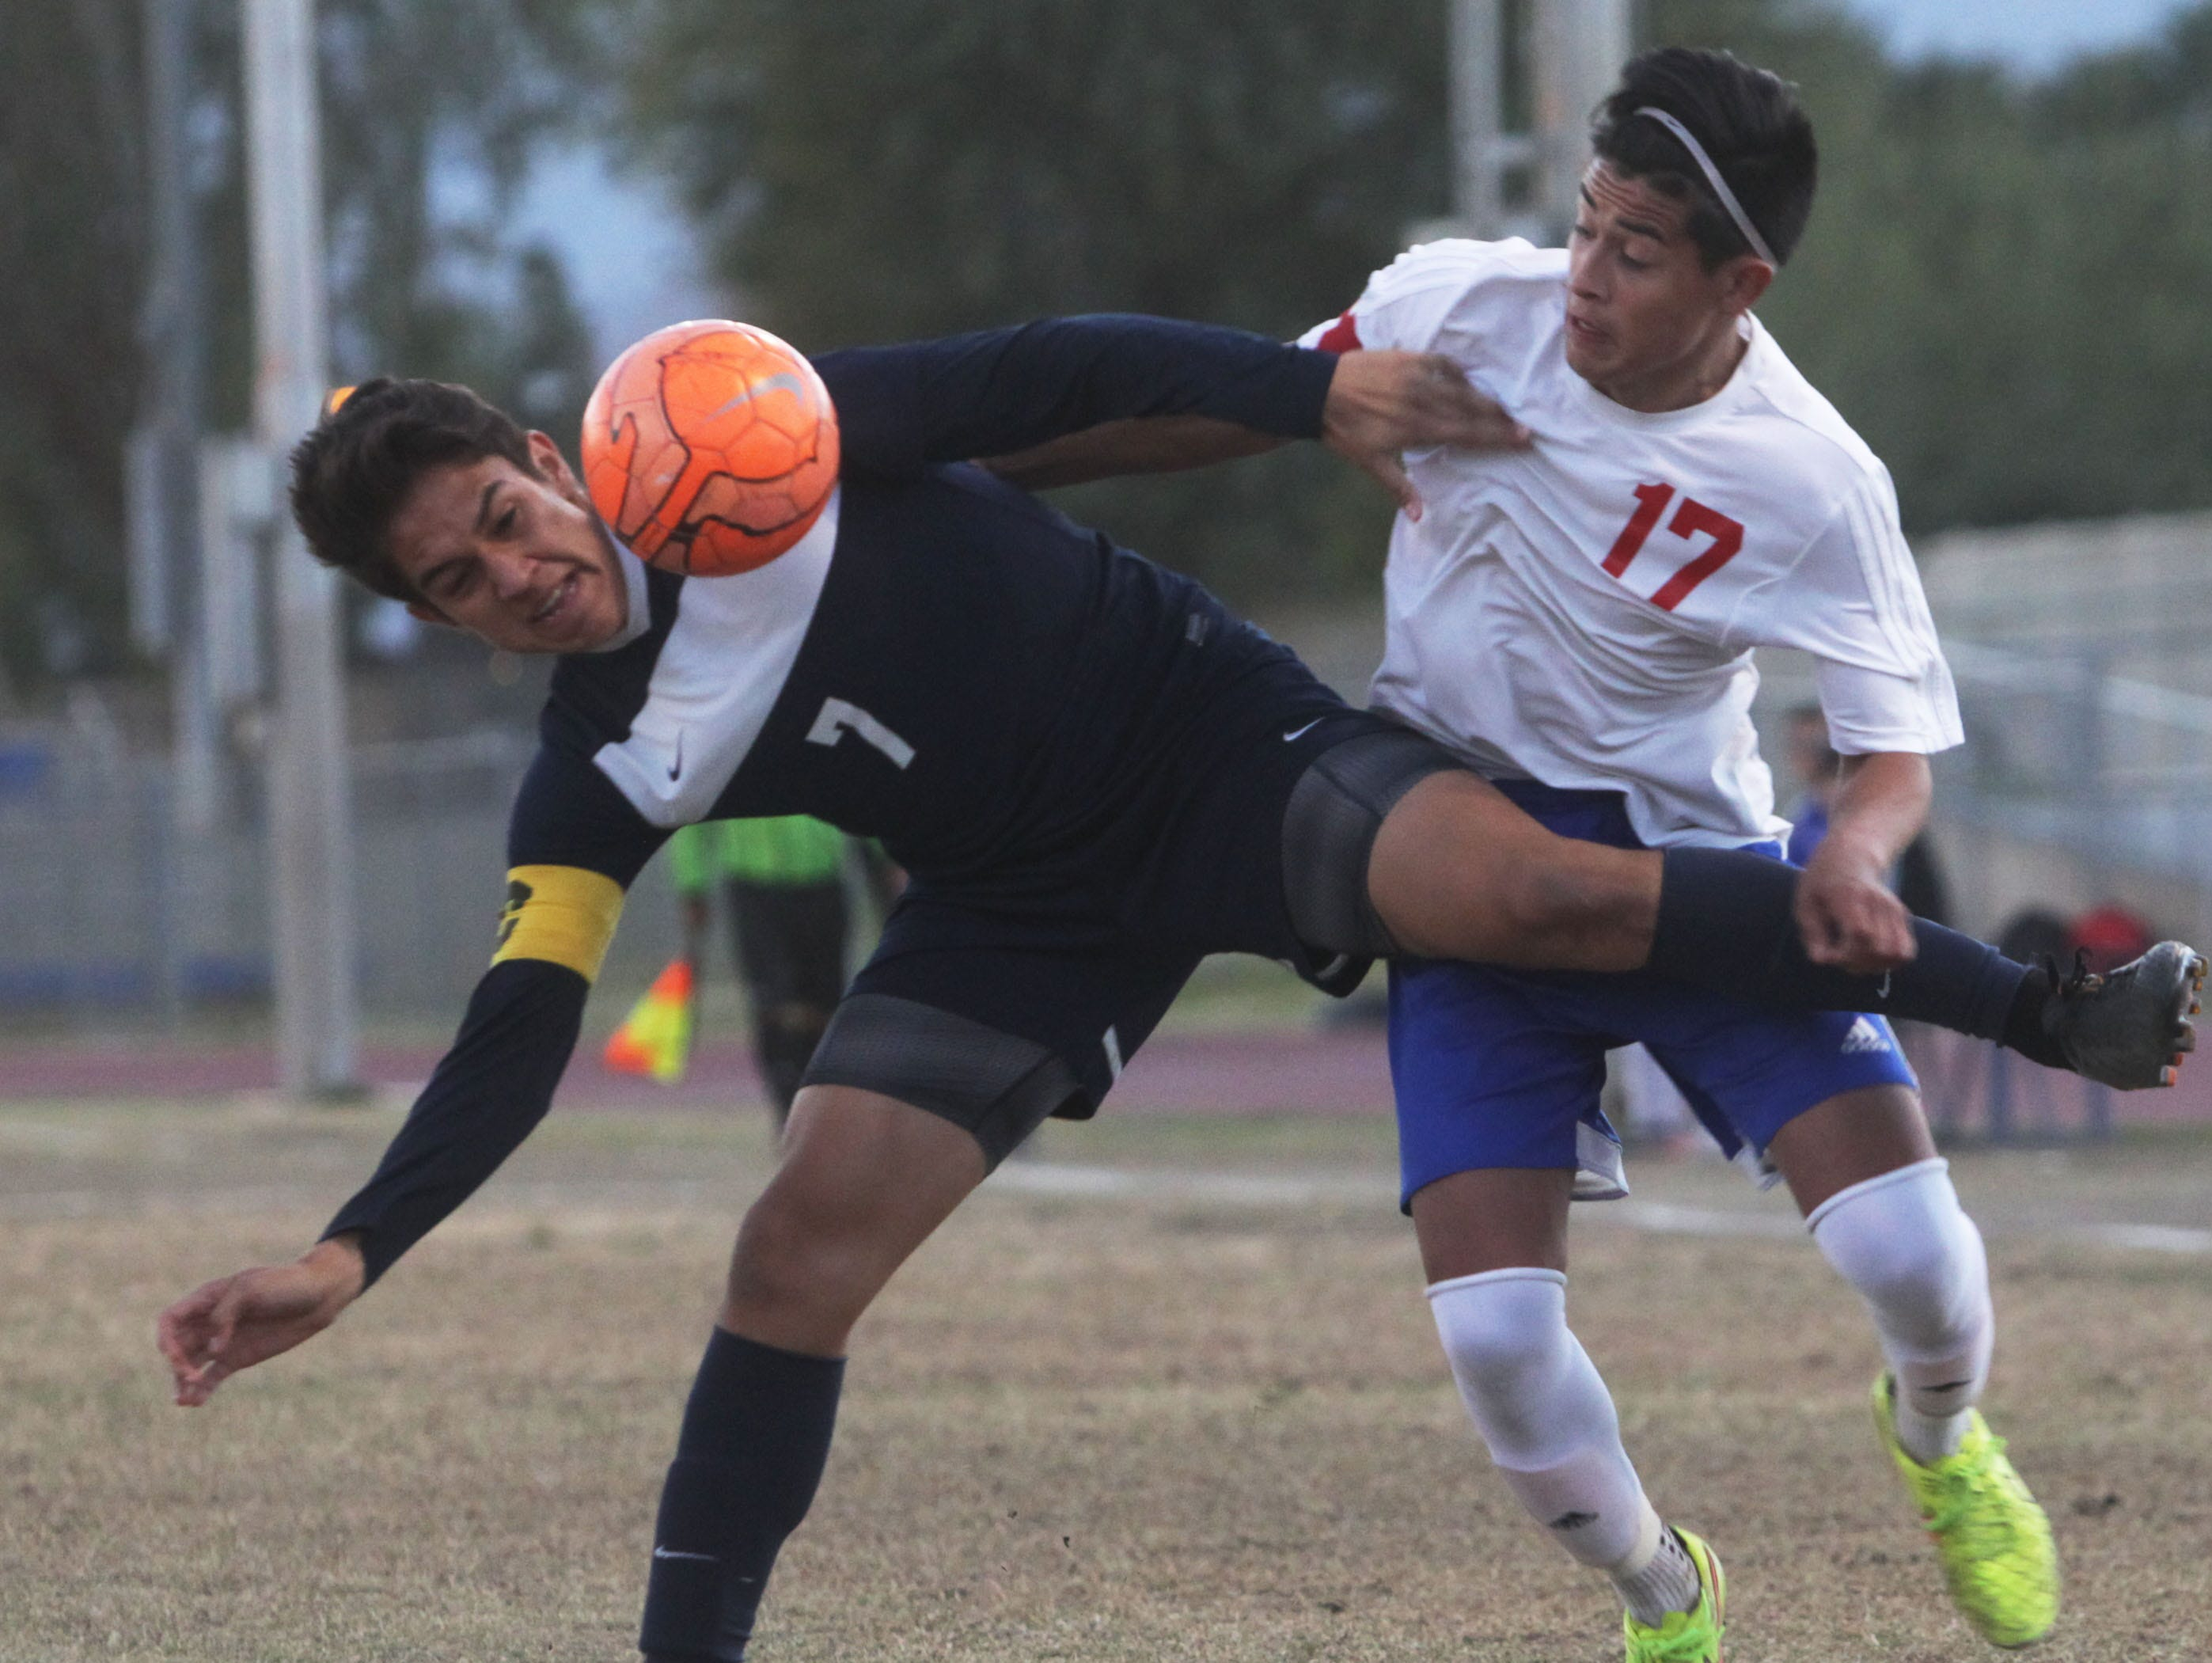 At far right, Indio High School's Jonathan Tremper battles for the ball against La Quinta High School's Sergio Gonzalez at Indio. Indio won the game 2-1 handing La Quinta their first loss.